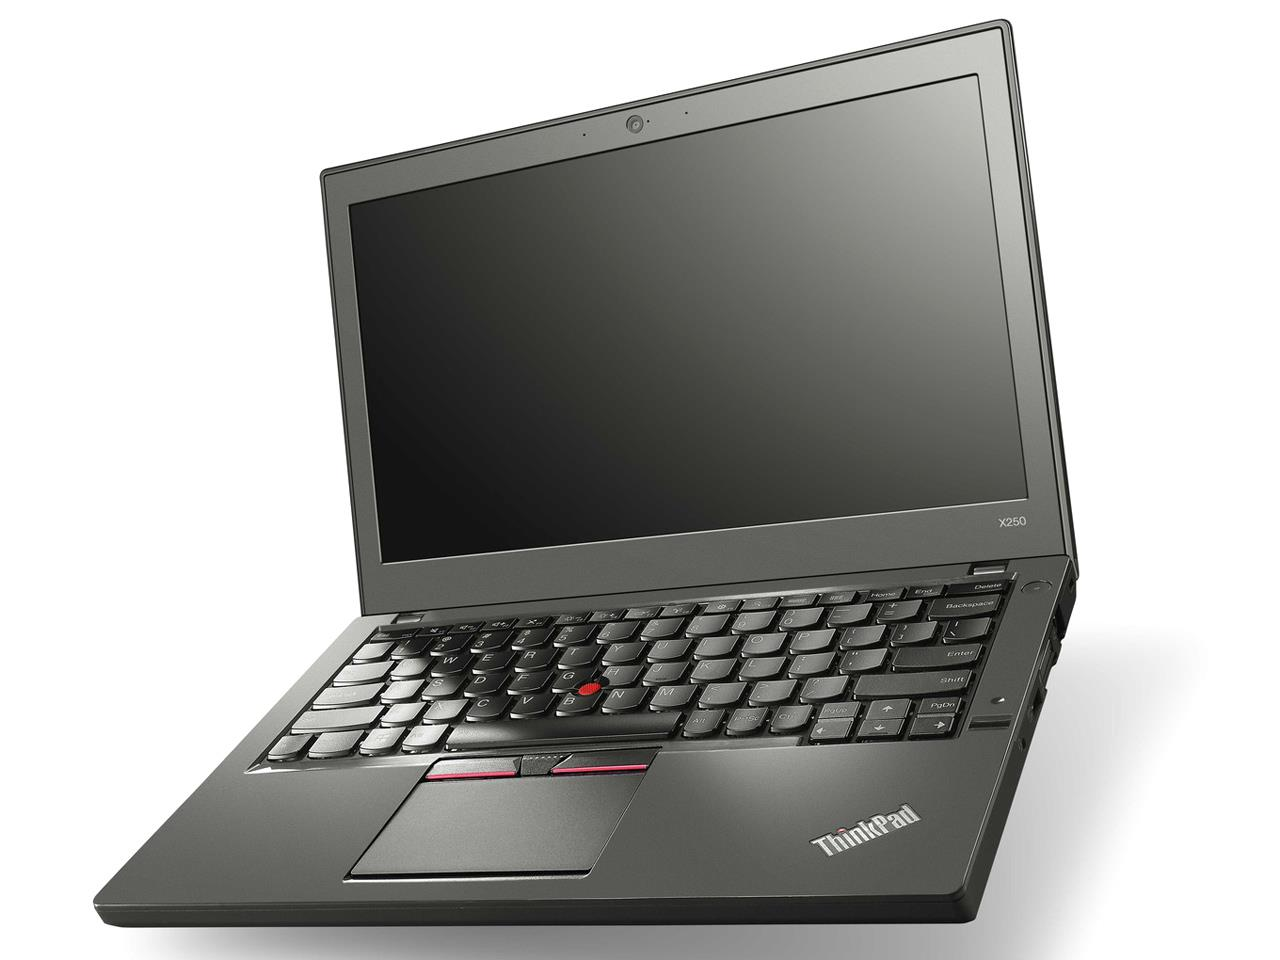 LENOVO THINKPAD X250 Intel Core i7-5600u/8GB/500GB-HDD